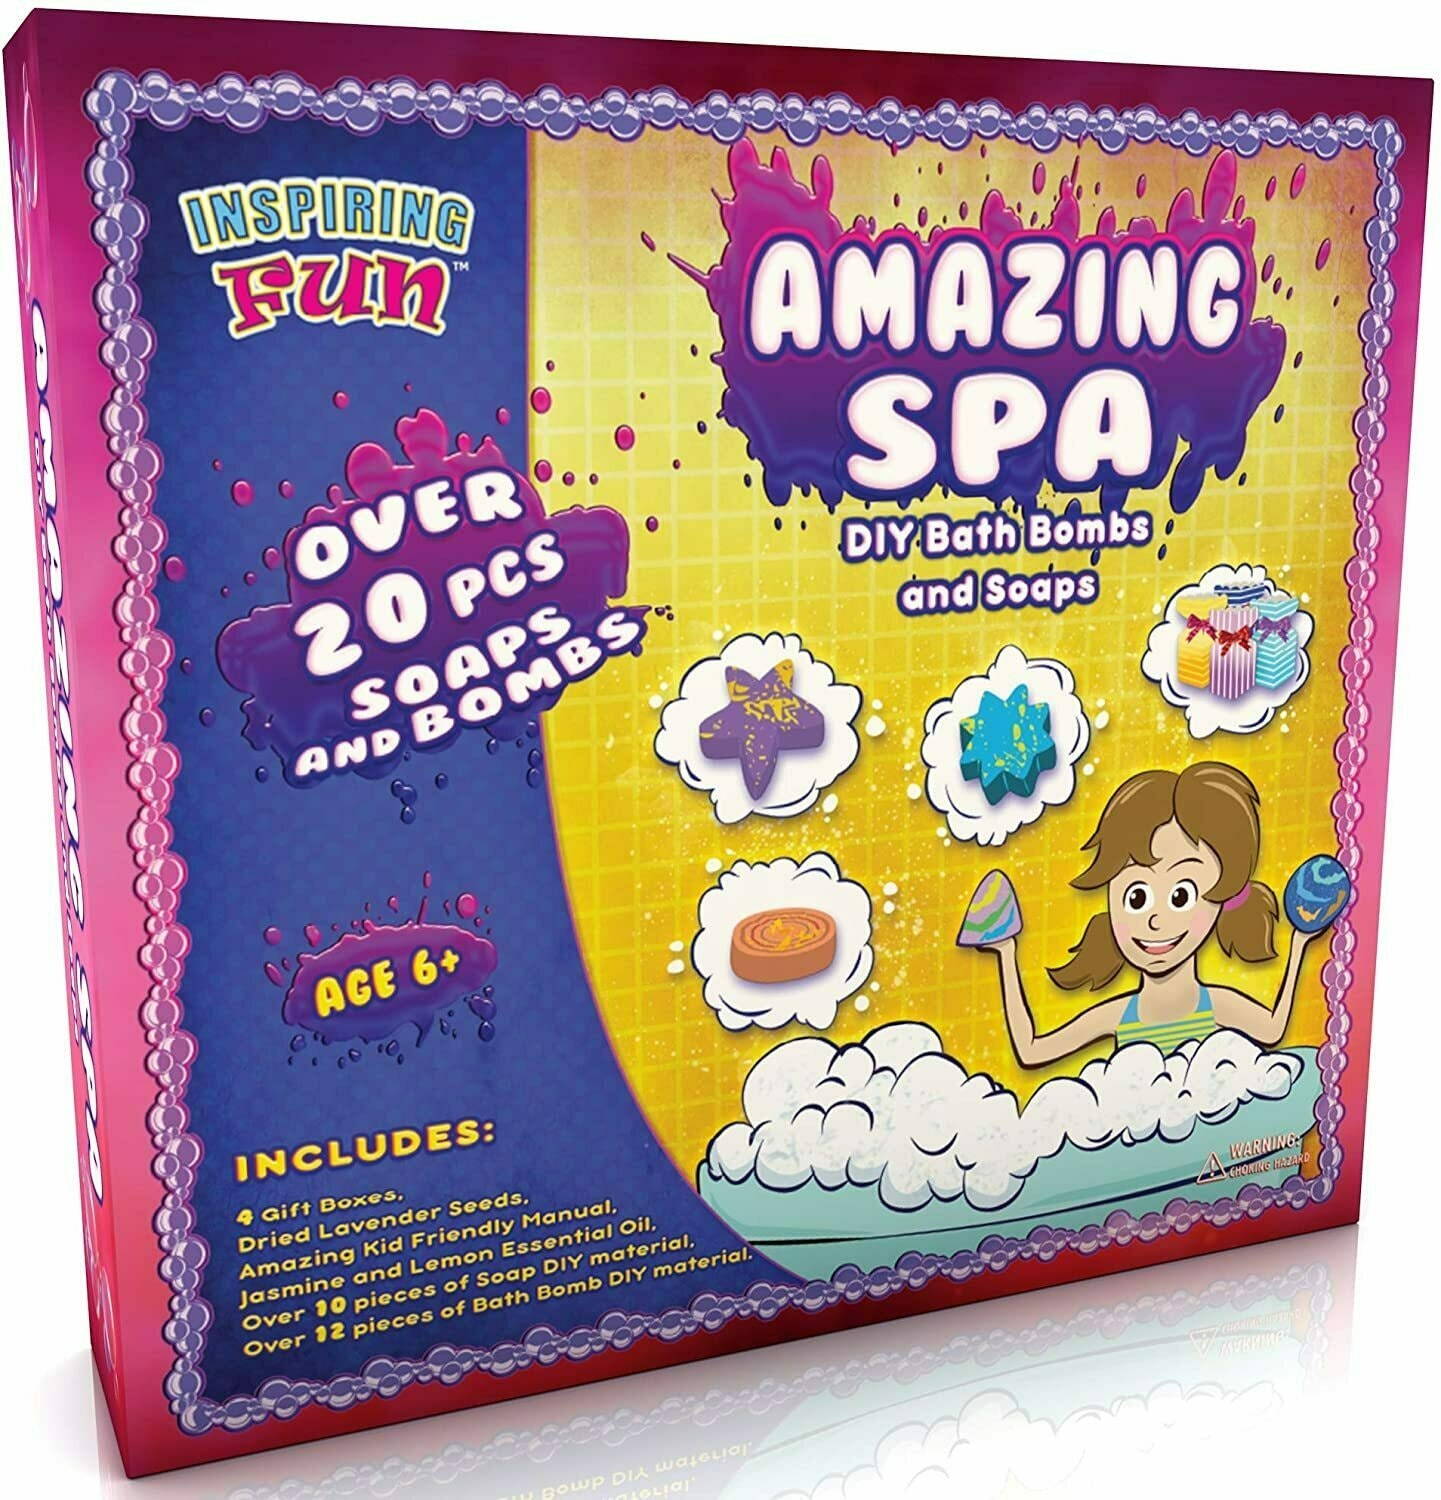 Inspiring Fun Amazing Spa Kit